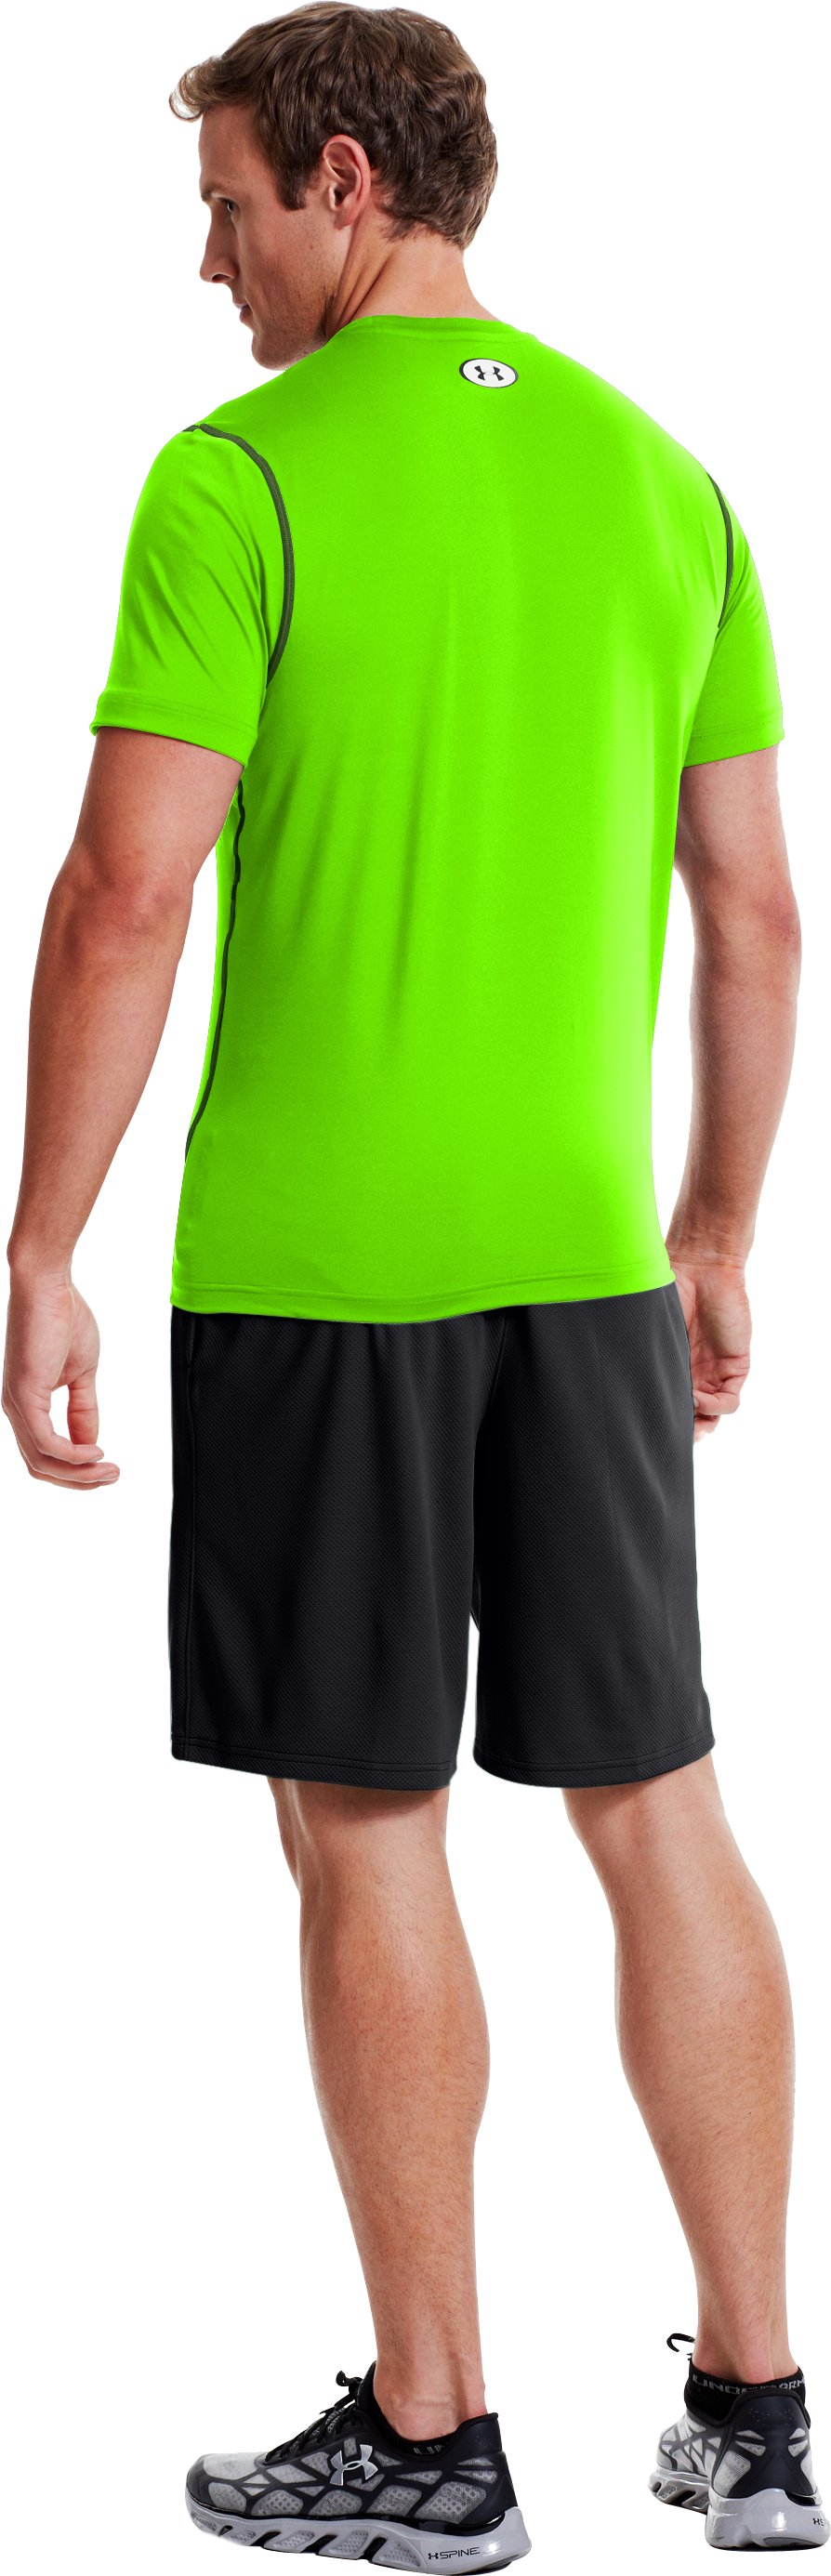 Men's HeatGear® Sonic Fitted Short Sleeve, HYPER GREEN, Back